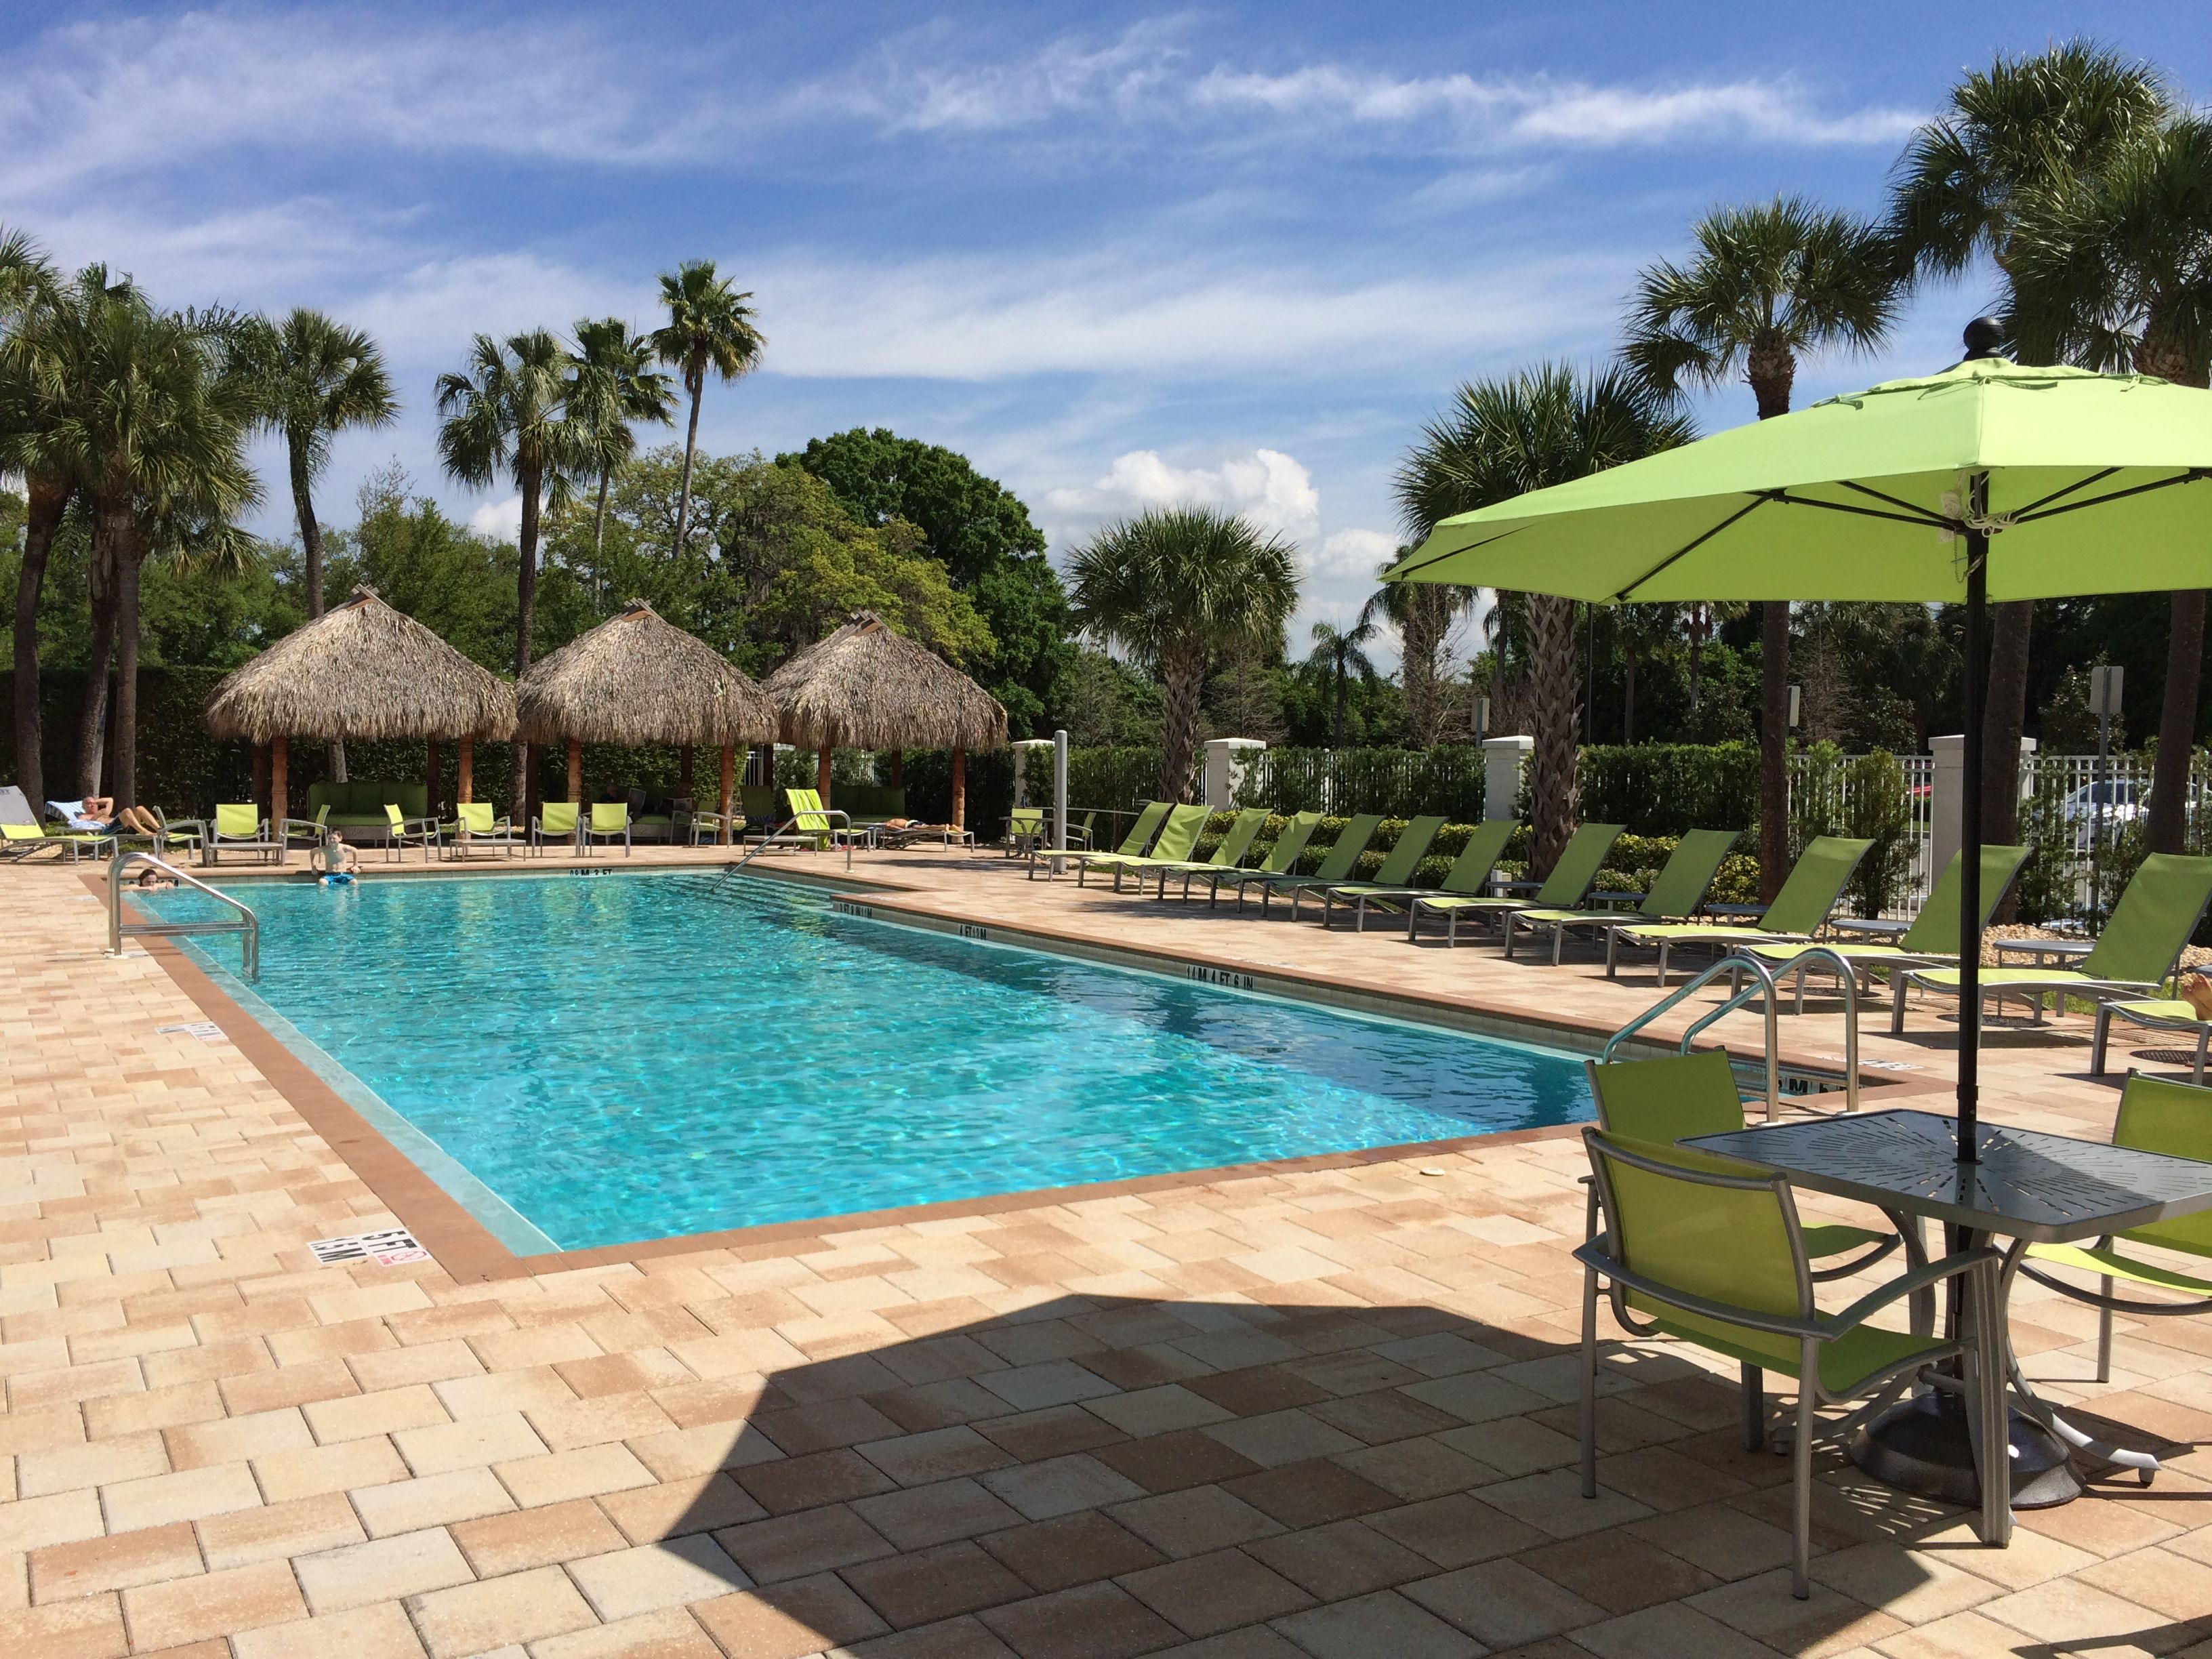 New Pool And Patio Furniture  Crowne Plaza Tampa Westshore